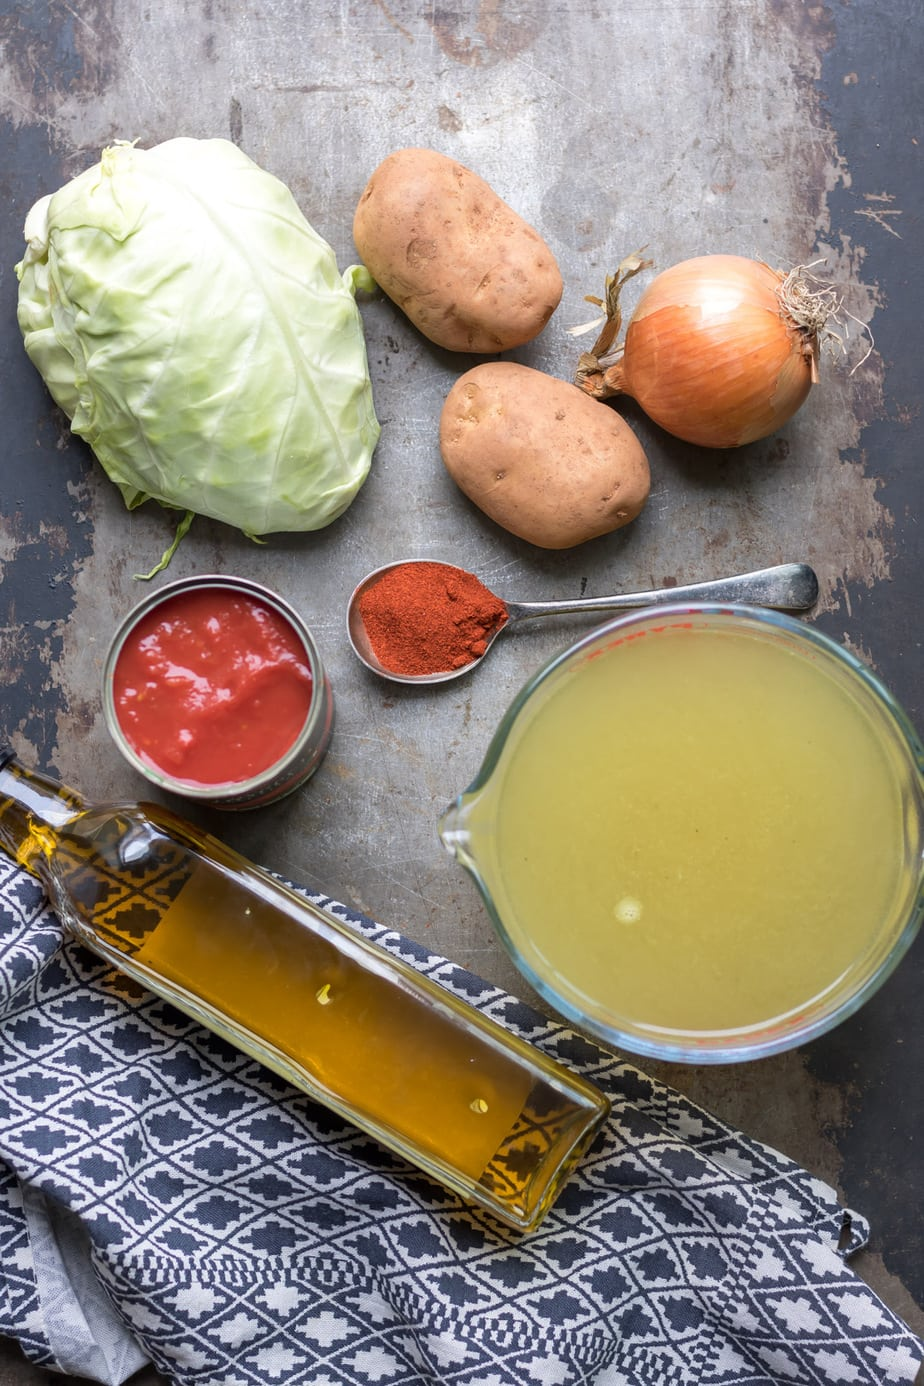 Tale with ingredients for cabbage soup.